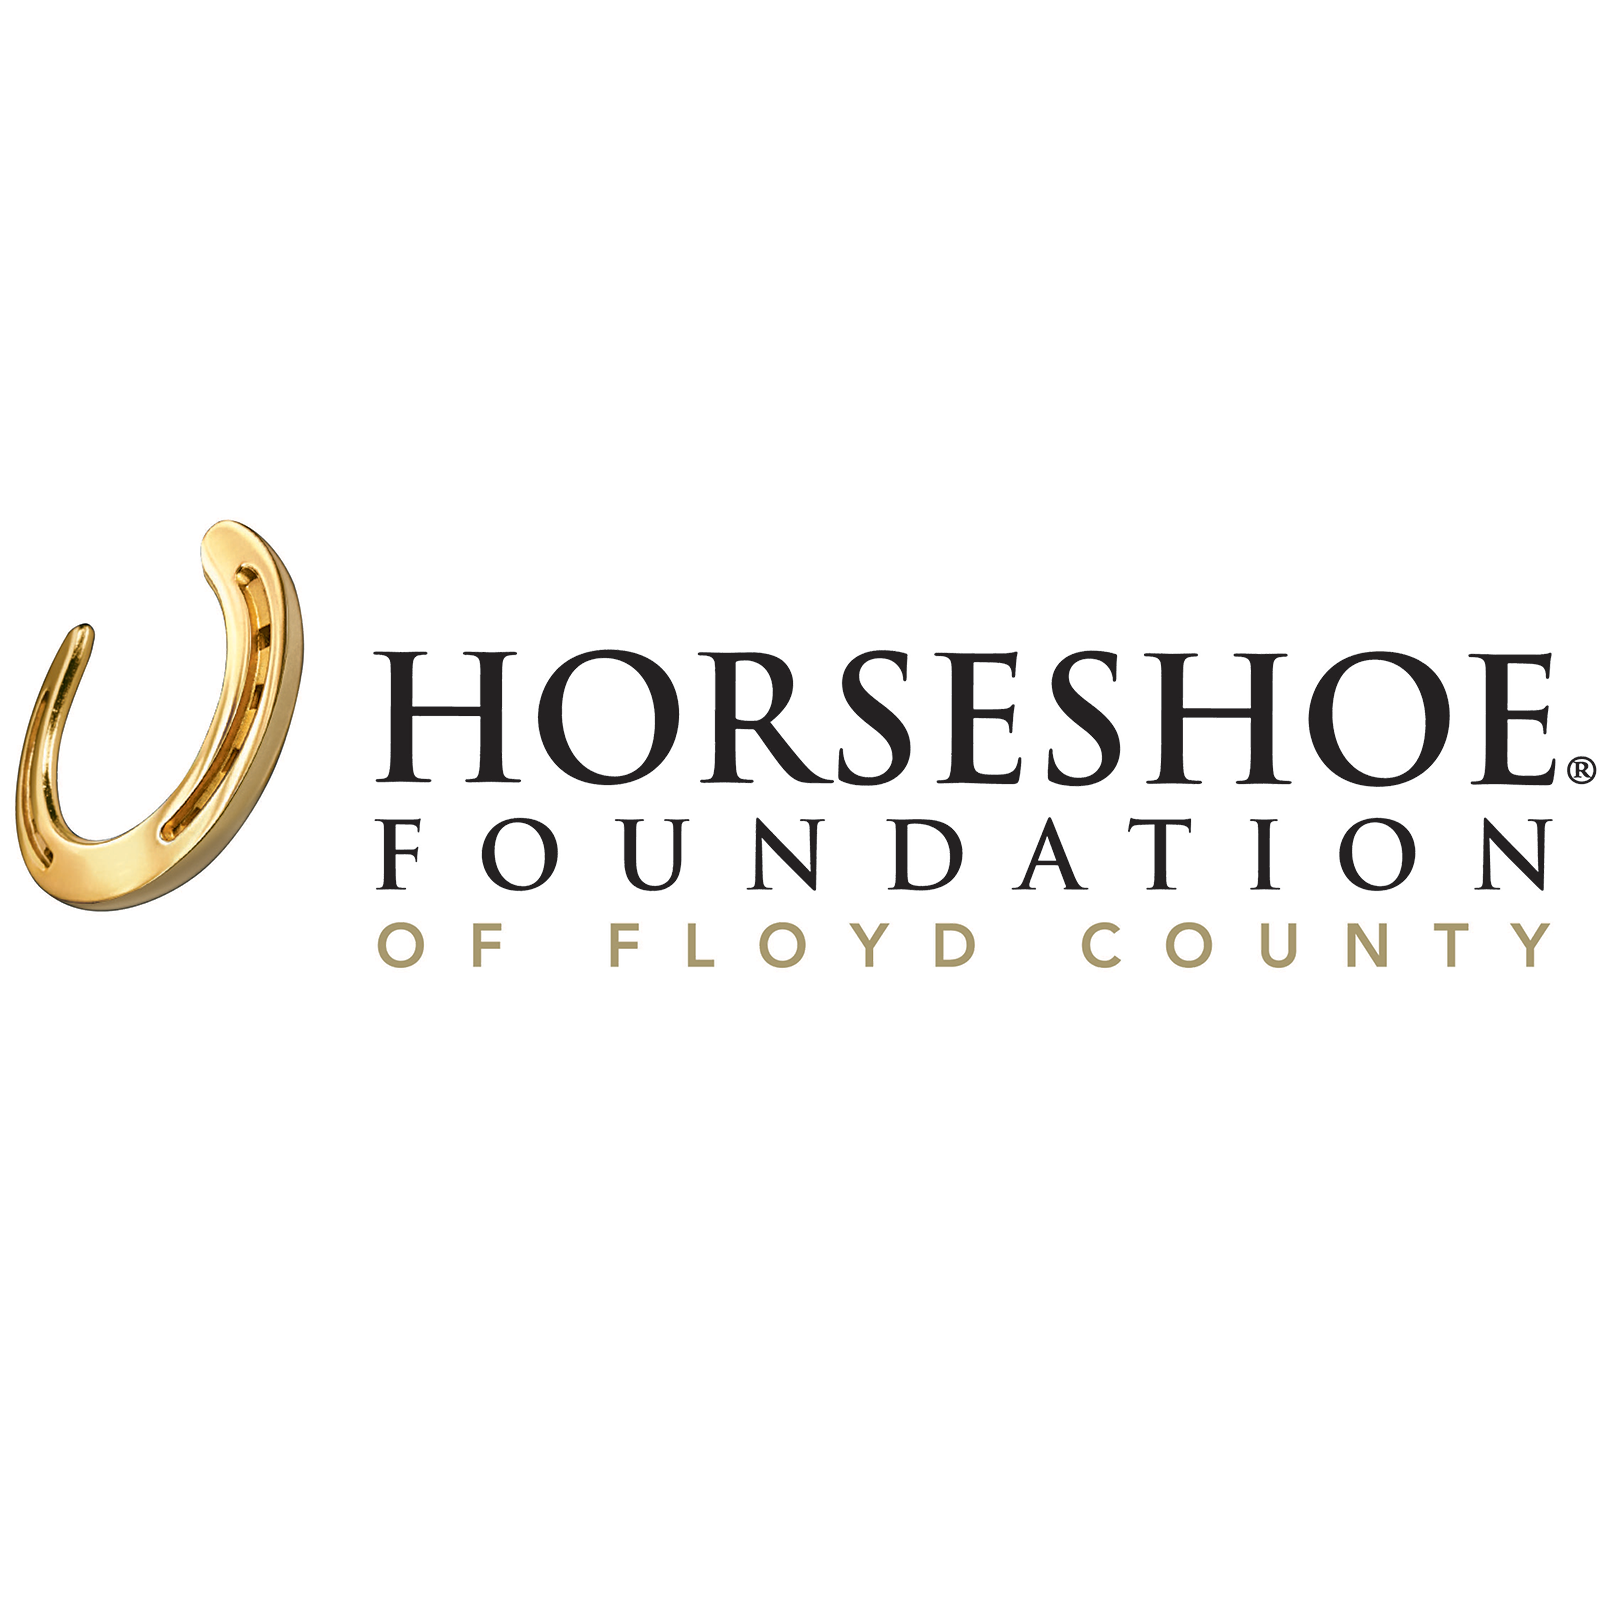 Horseshoe Foundation of Floyd County